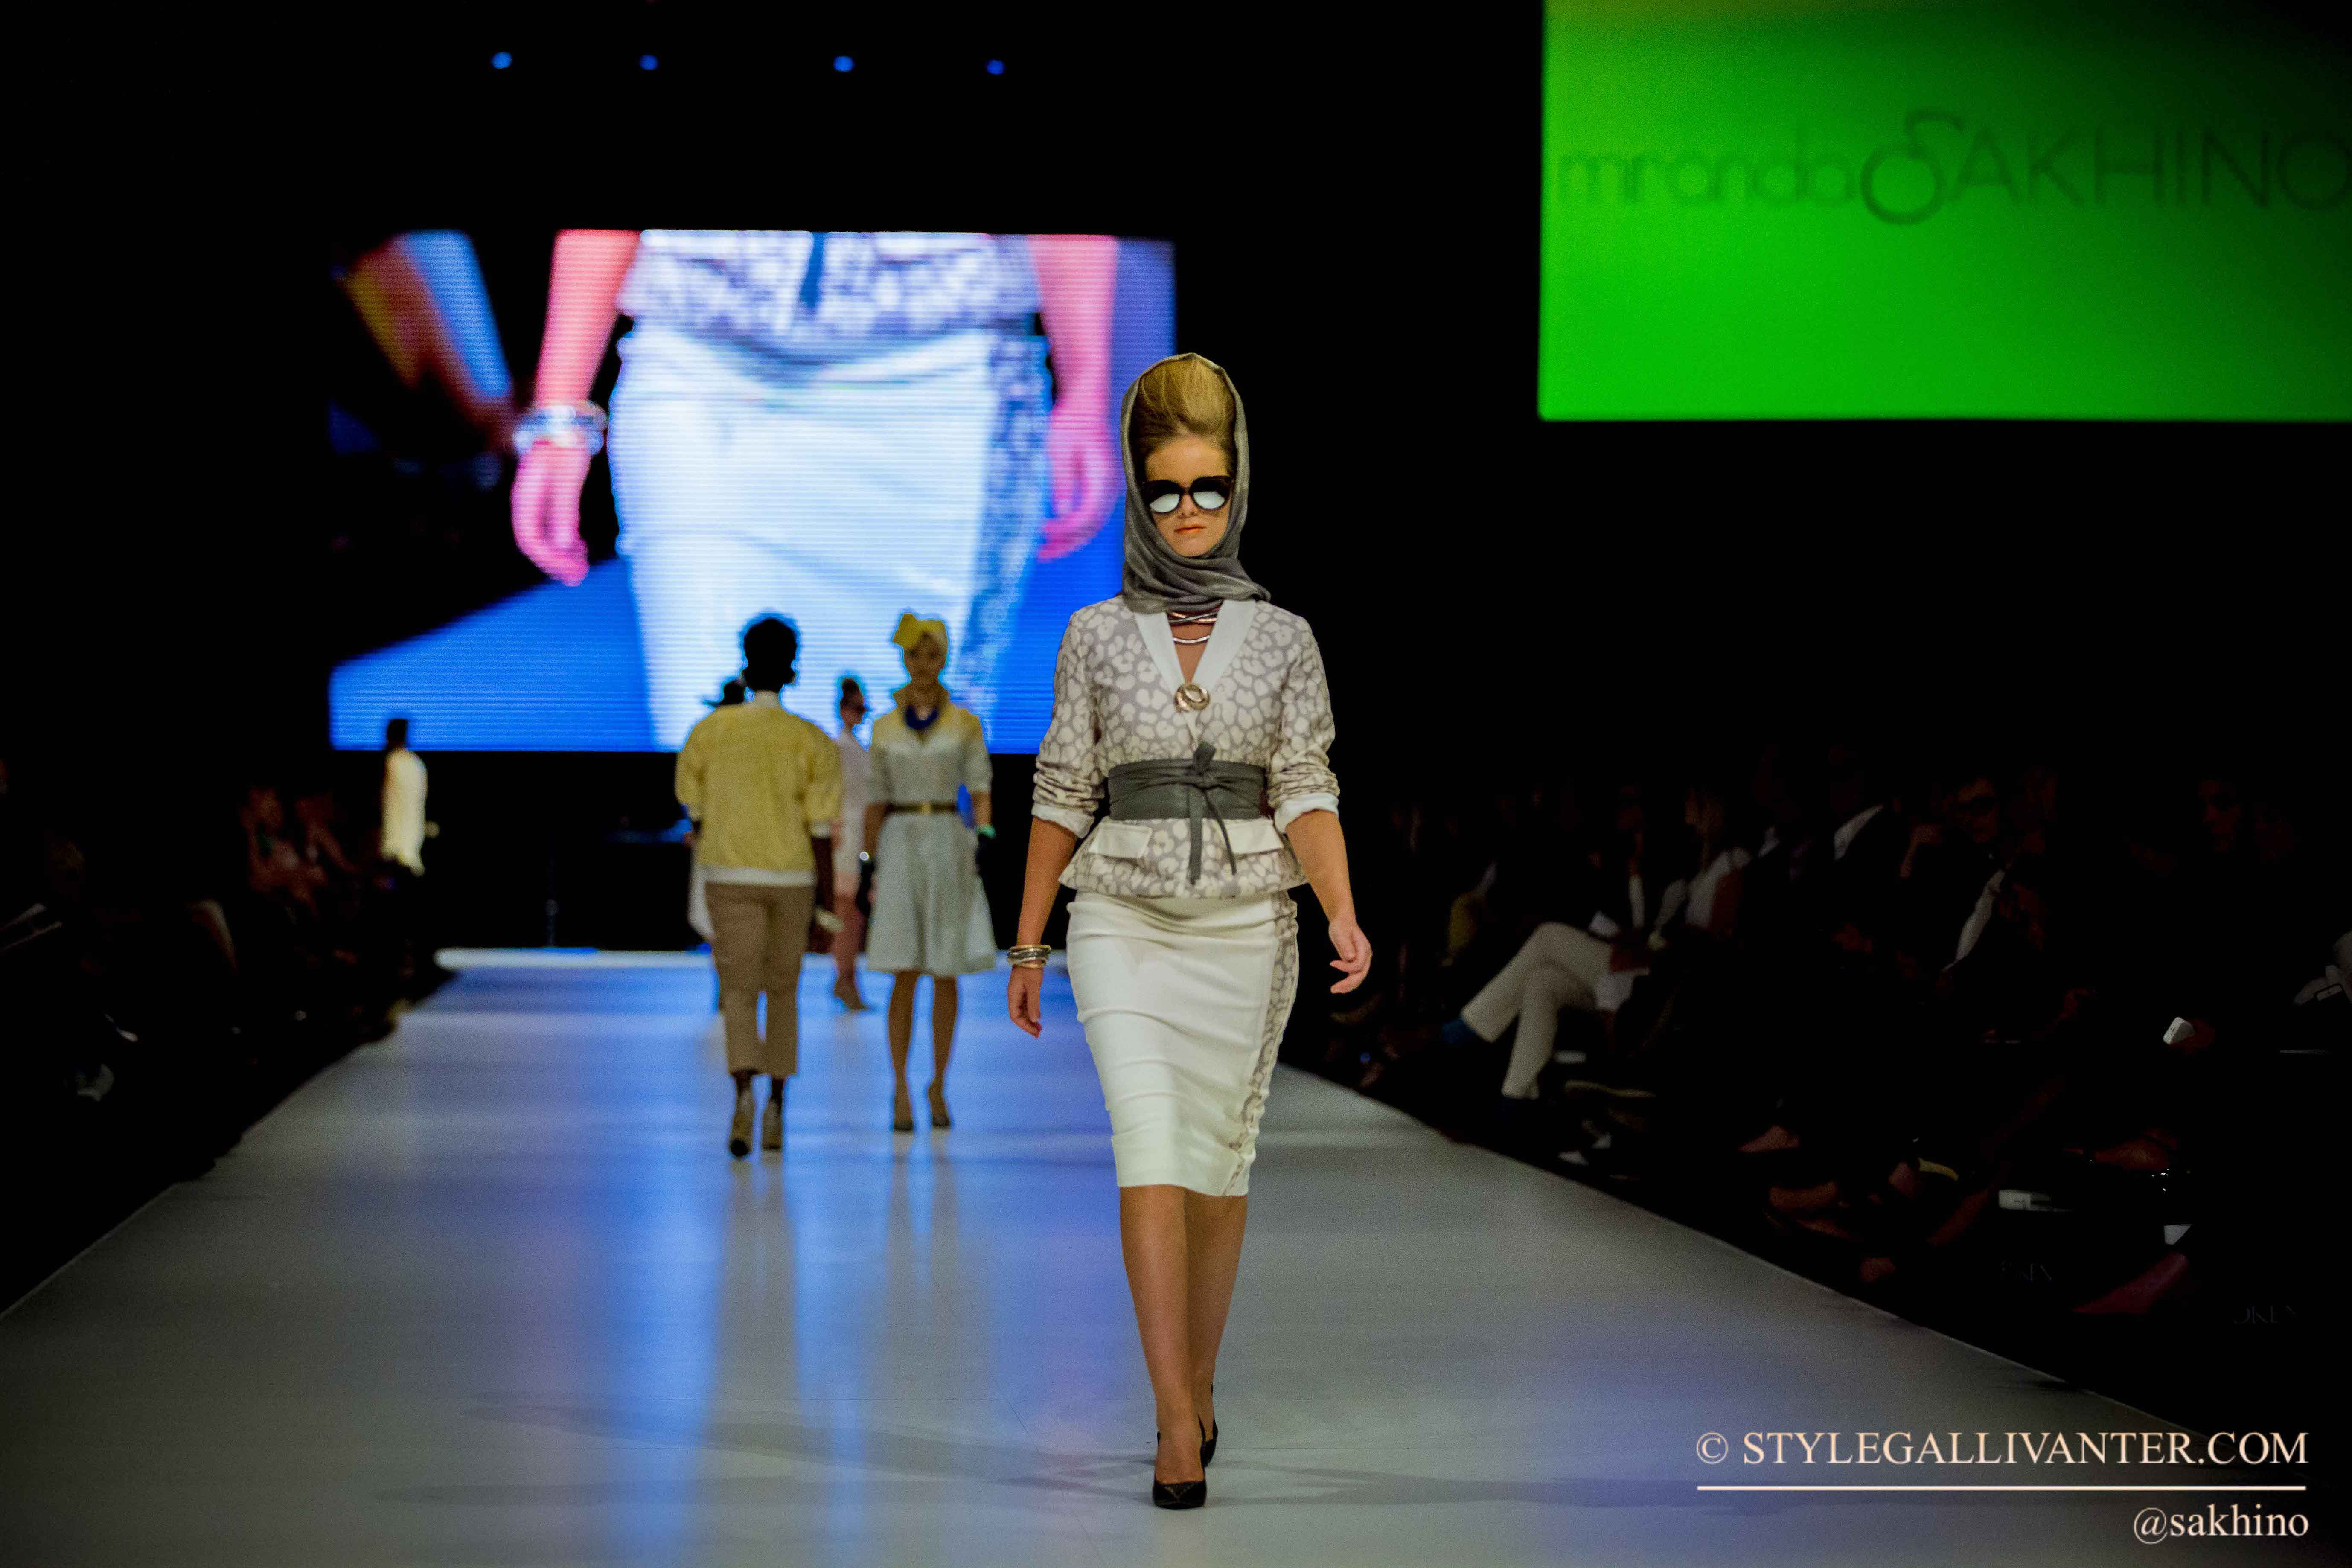 mirandaSAKHINO-copyright-2015_not-to-be-used-without-permission_mirandasakhino-runway-2015_mirandasakhino-fashfest-miranda-sakhino-resort-collection_miranda-sakhino-fashfest